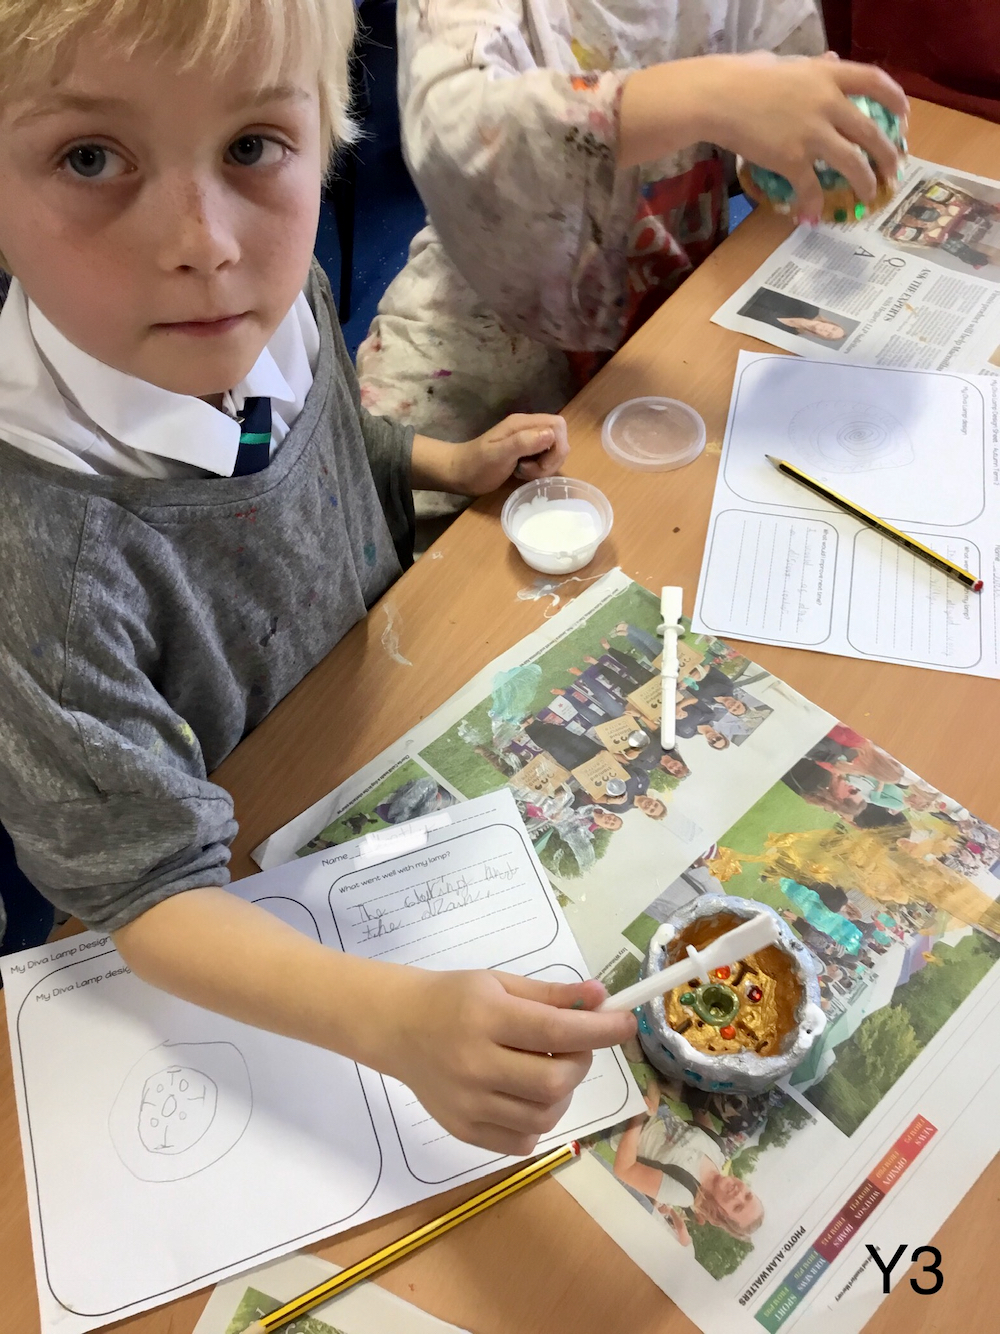 An unknown boy working with glue and paint to decorate a clay pot that he has made with sketchbook pages with his design ideas